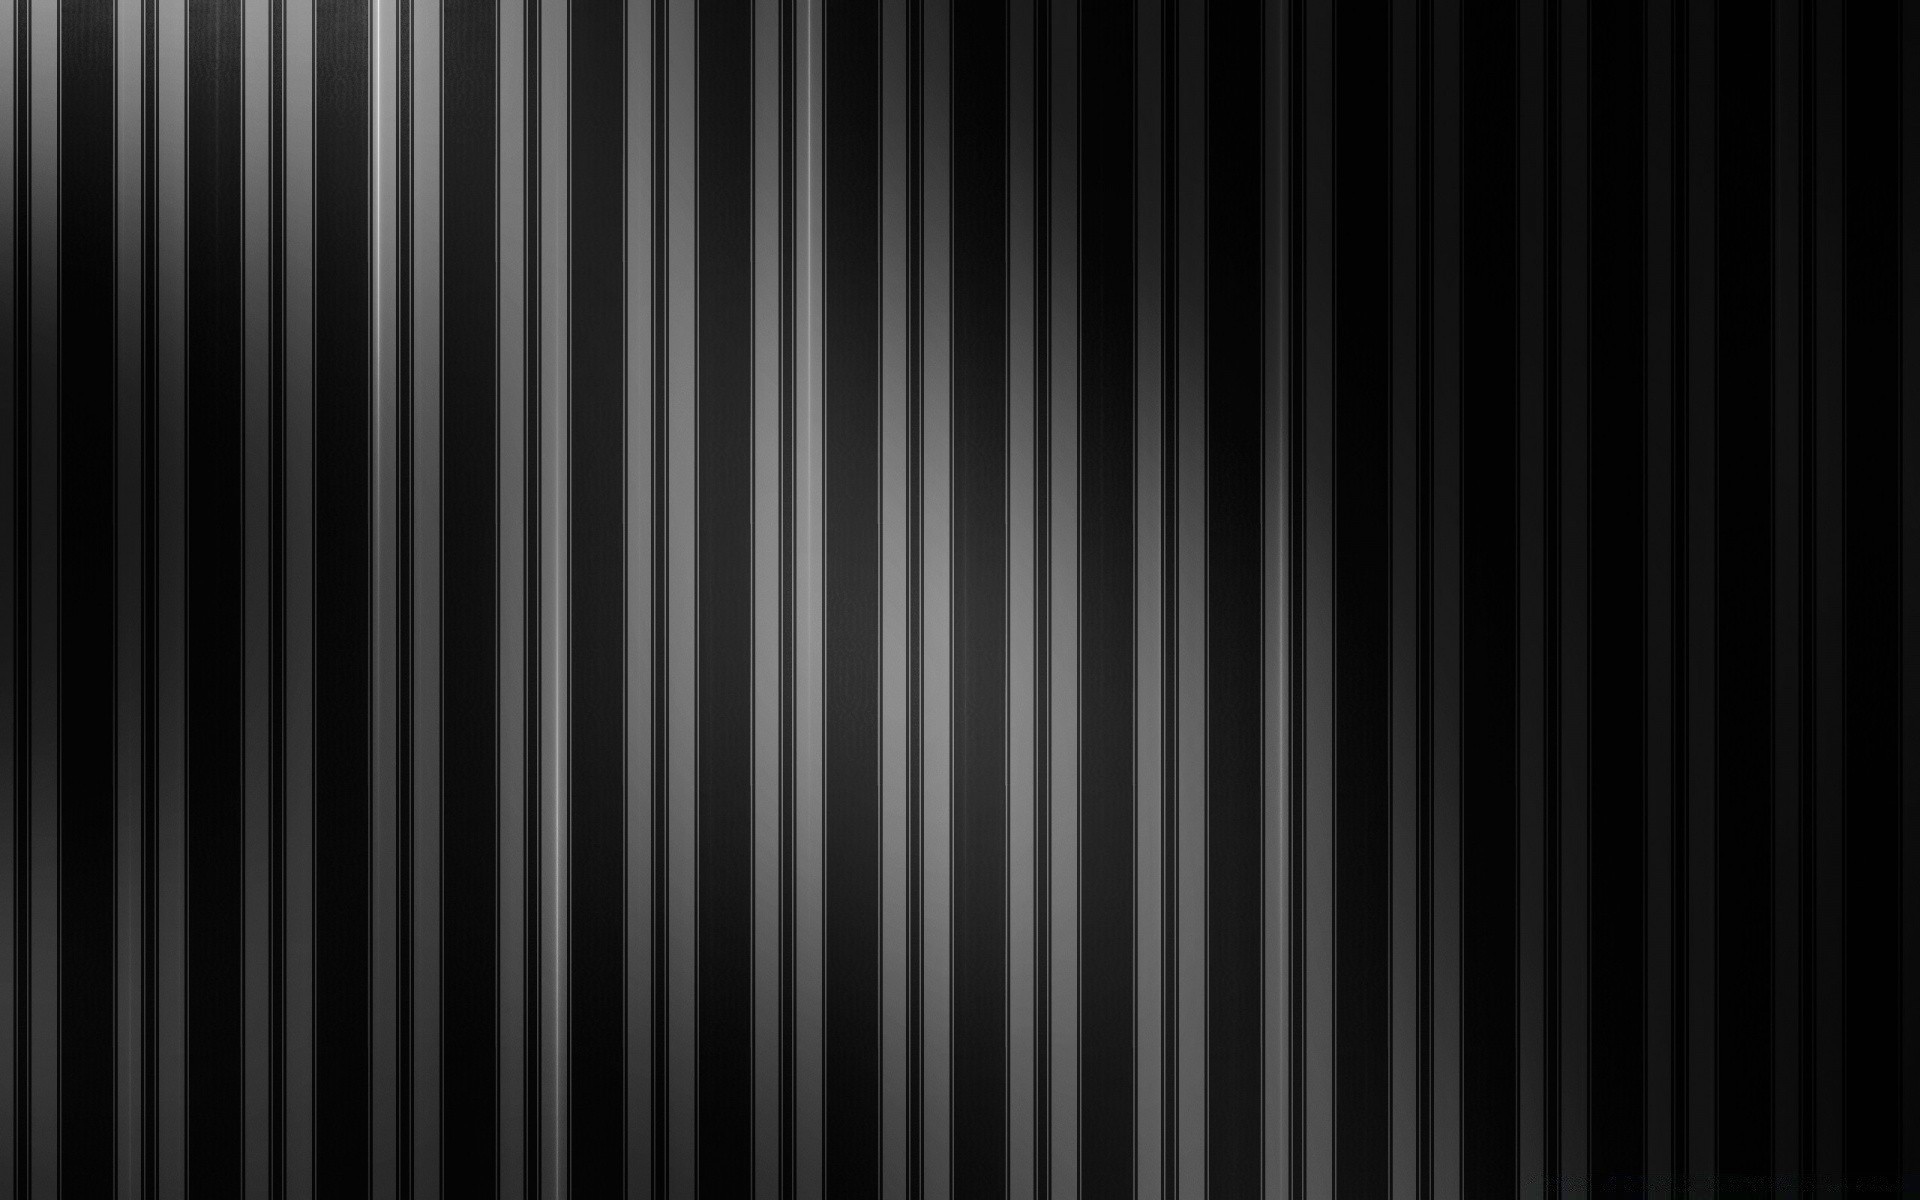 Black Stripe Pattern IPhone Wallpapers For Free